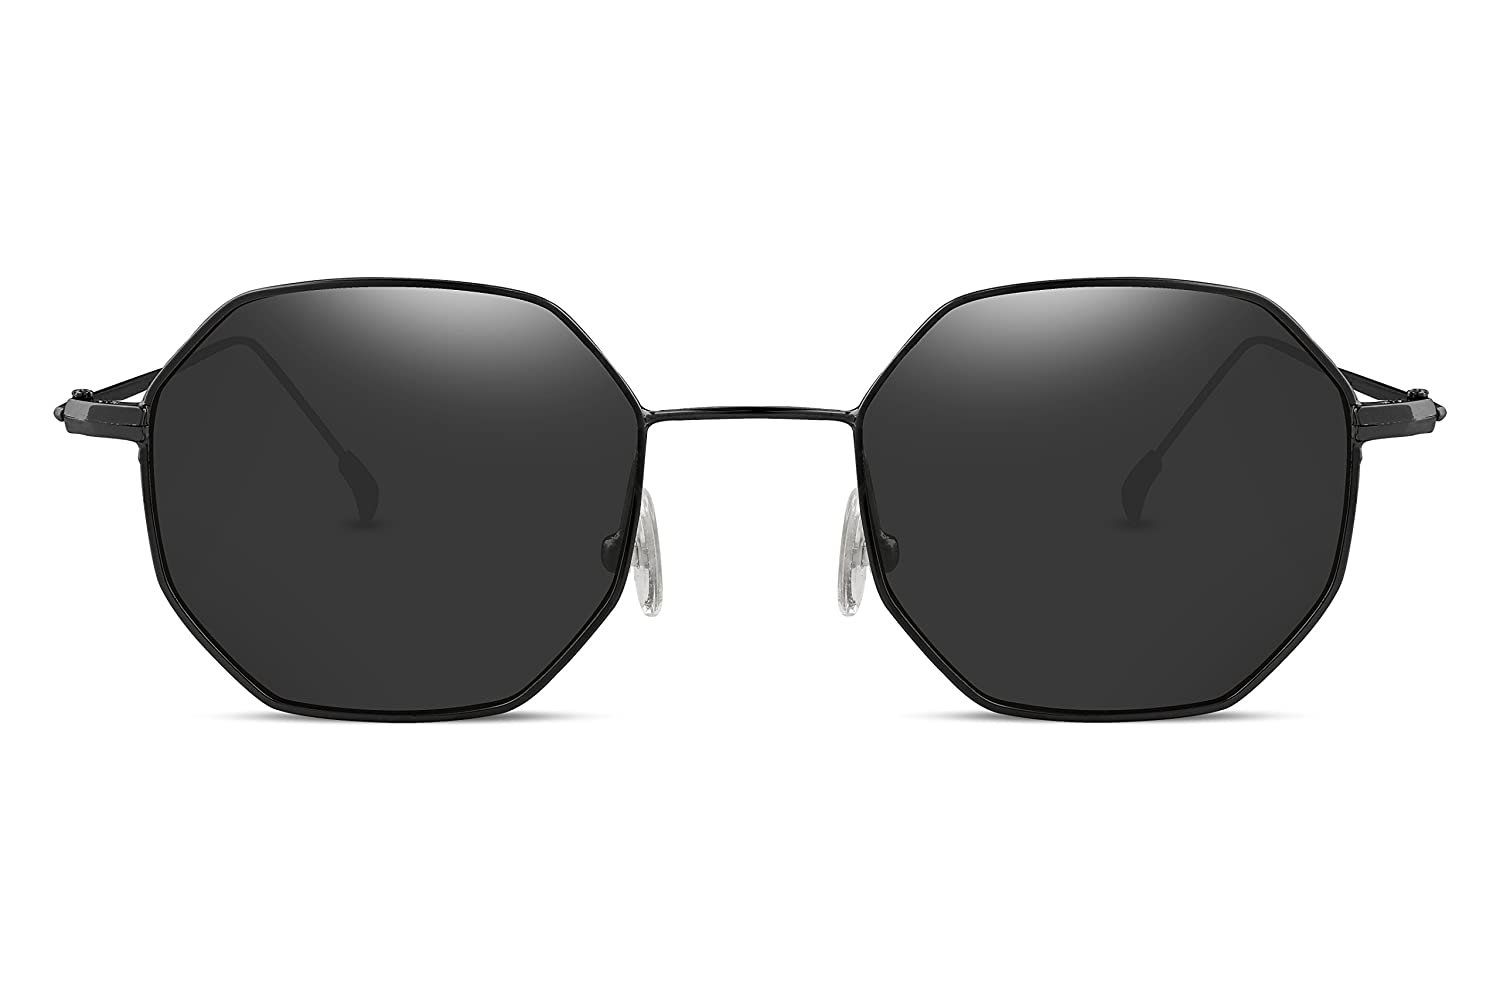 36bcead1dda Amazon.com  FEISEDY Hipster Polygon Sunglasses Small Metal Frame Delicate  Temple Women B2254  Clothing